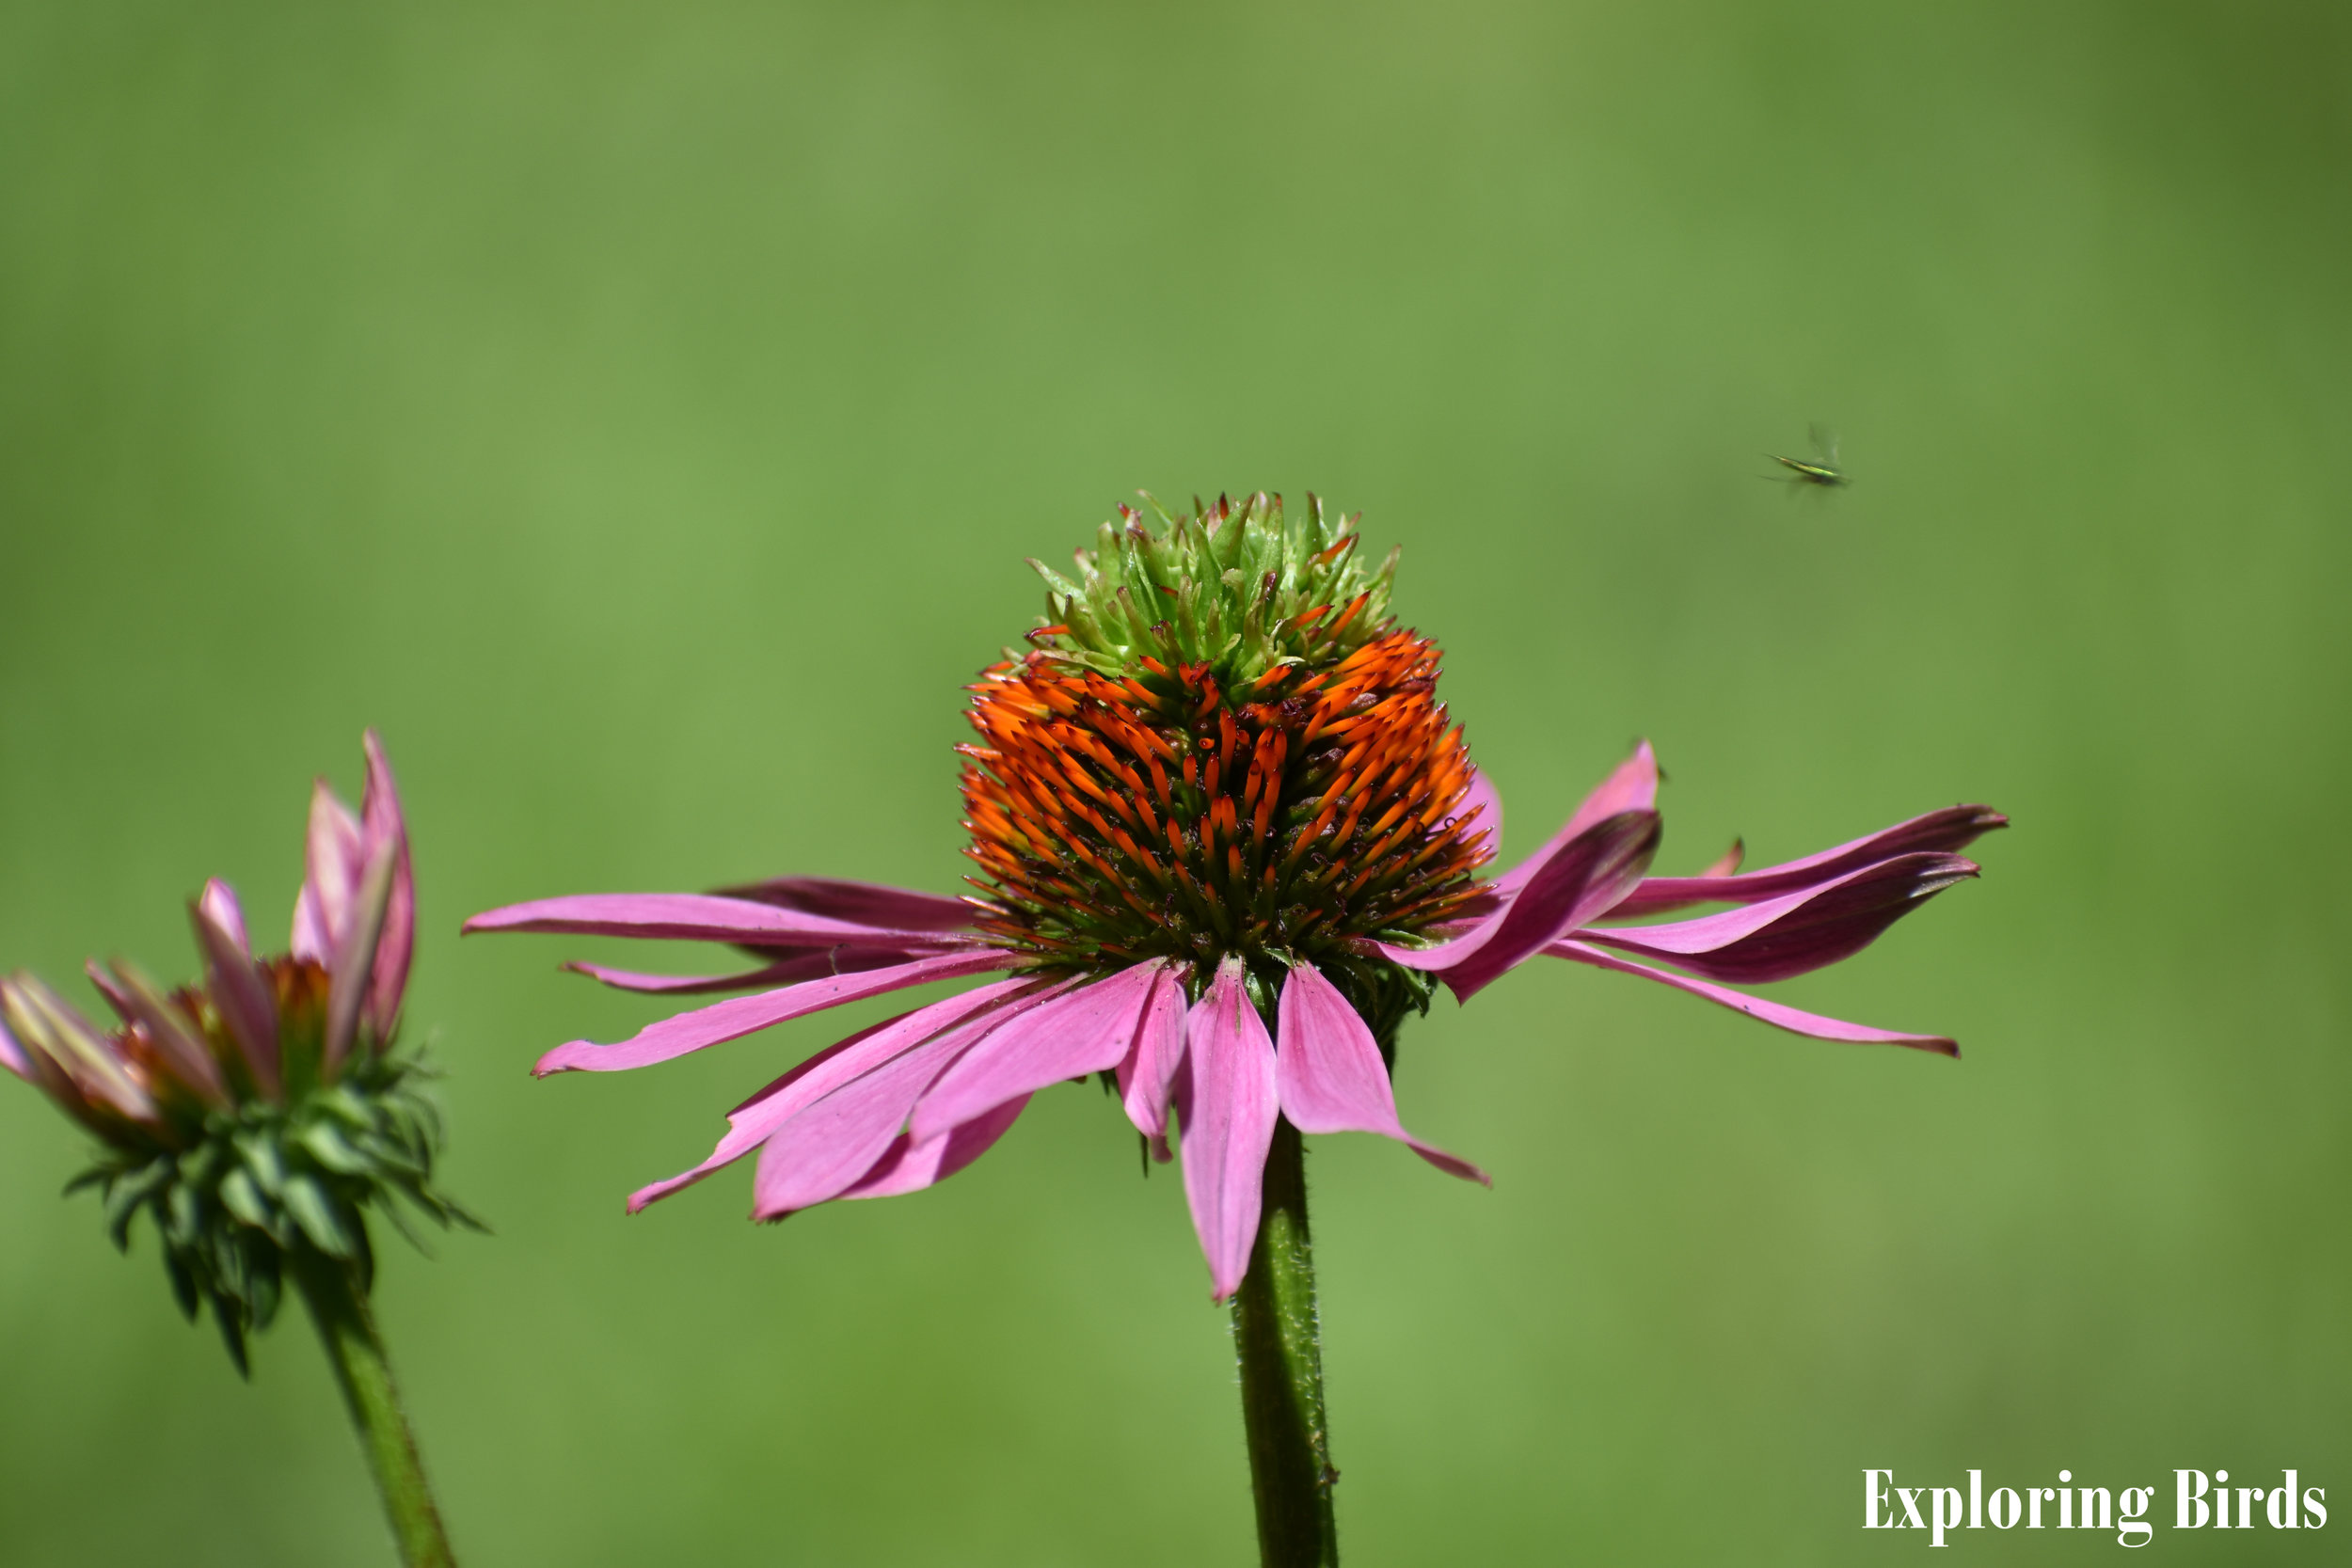 Purple Coneflower is a flower that attracts insects